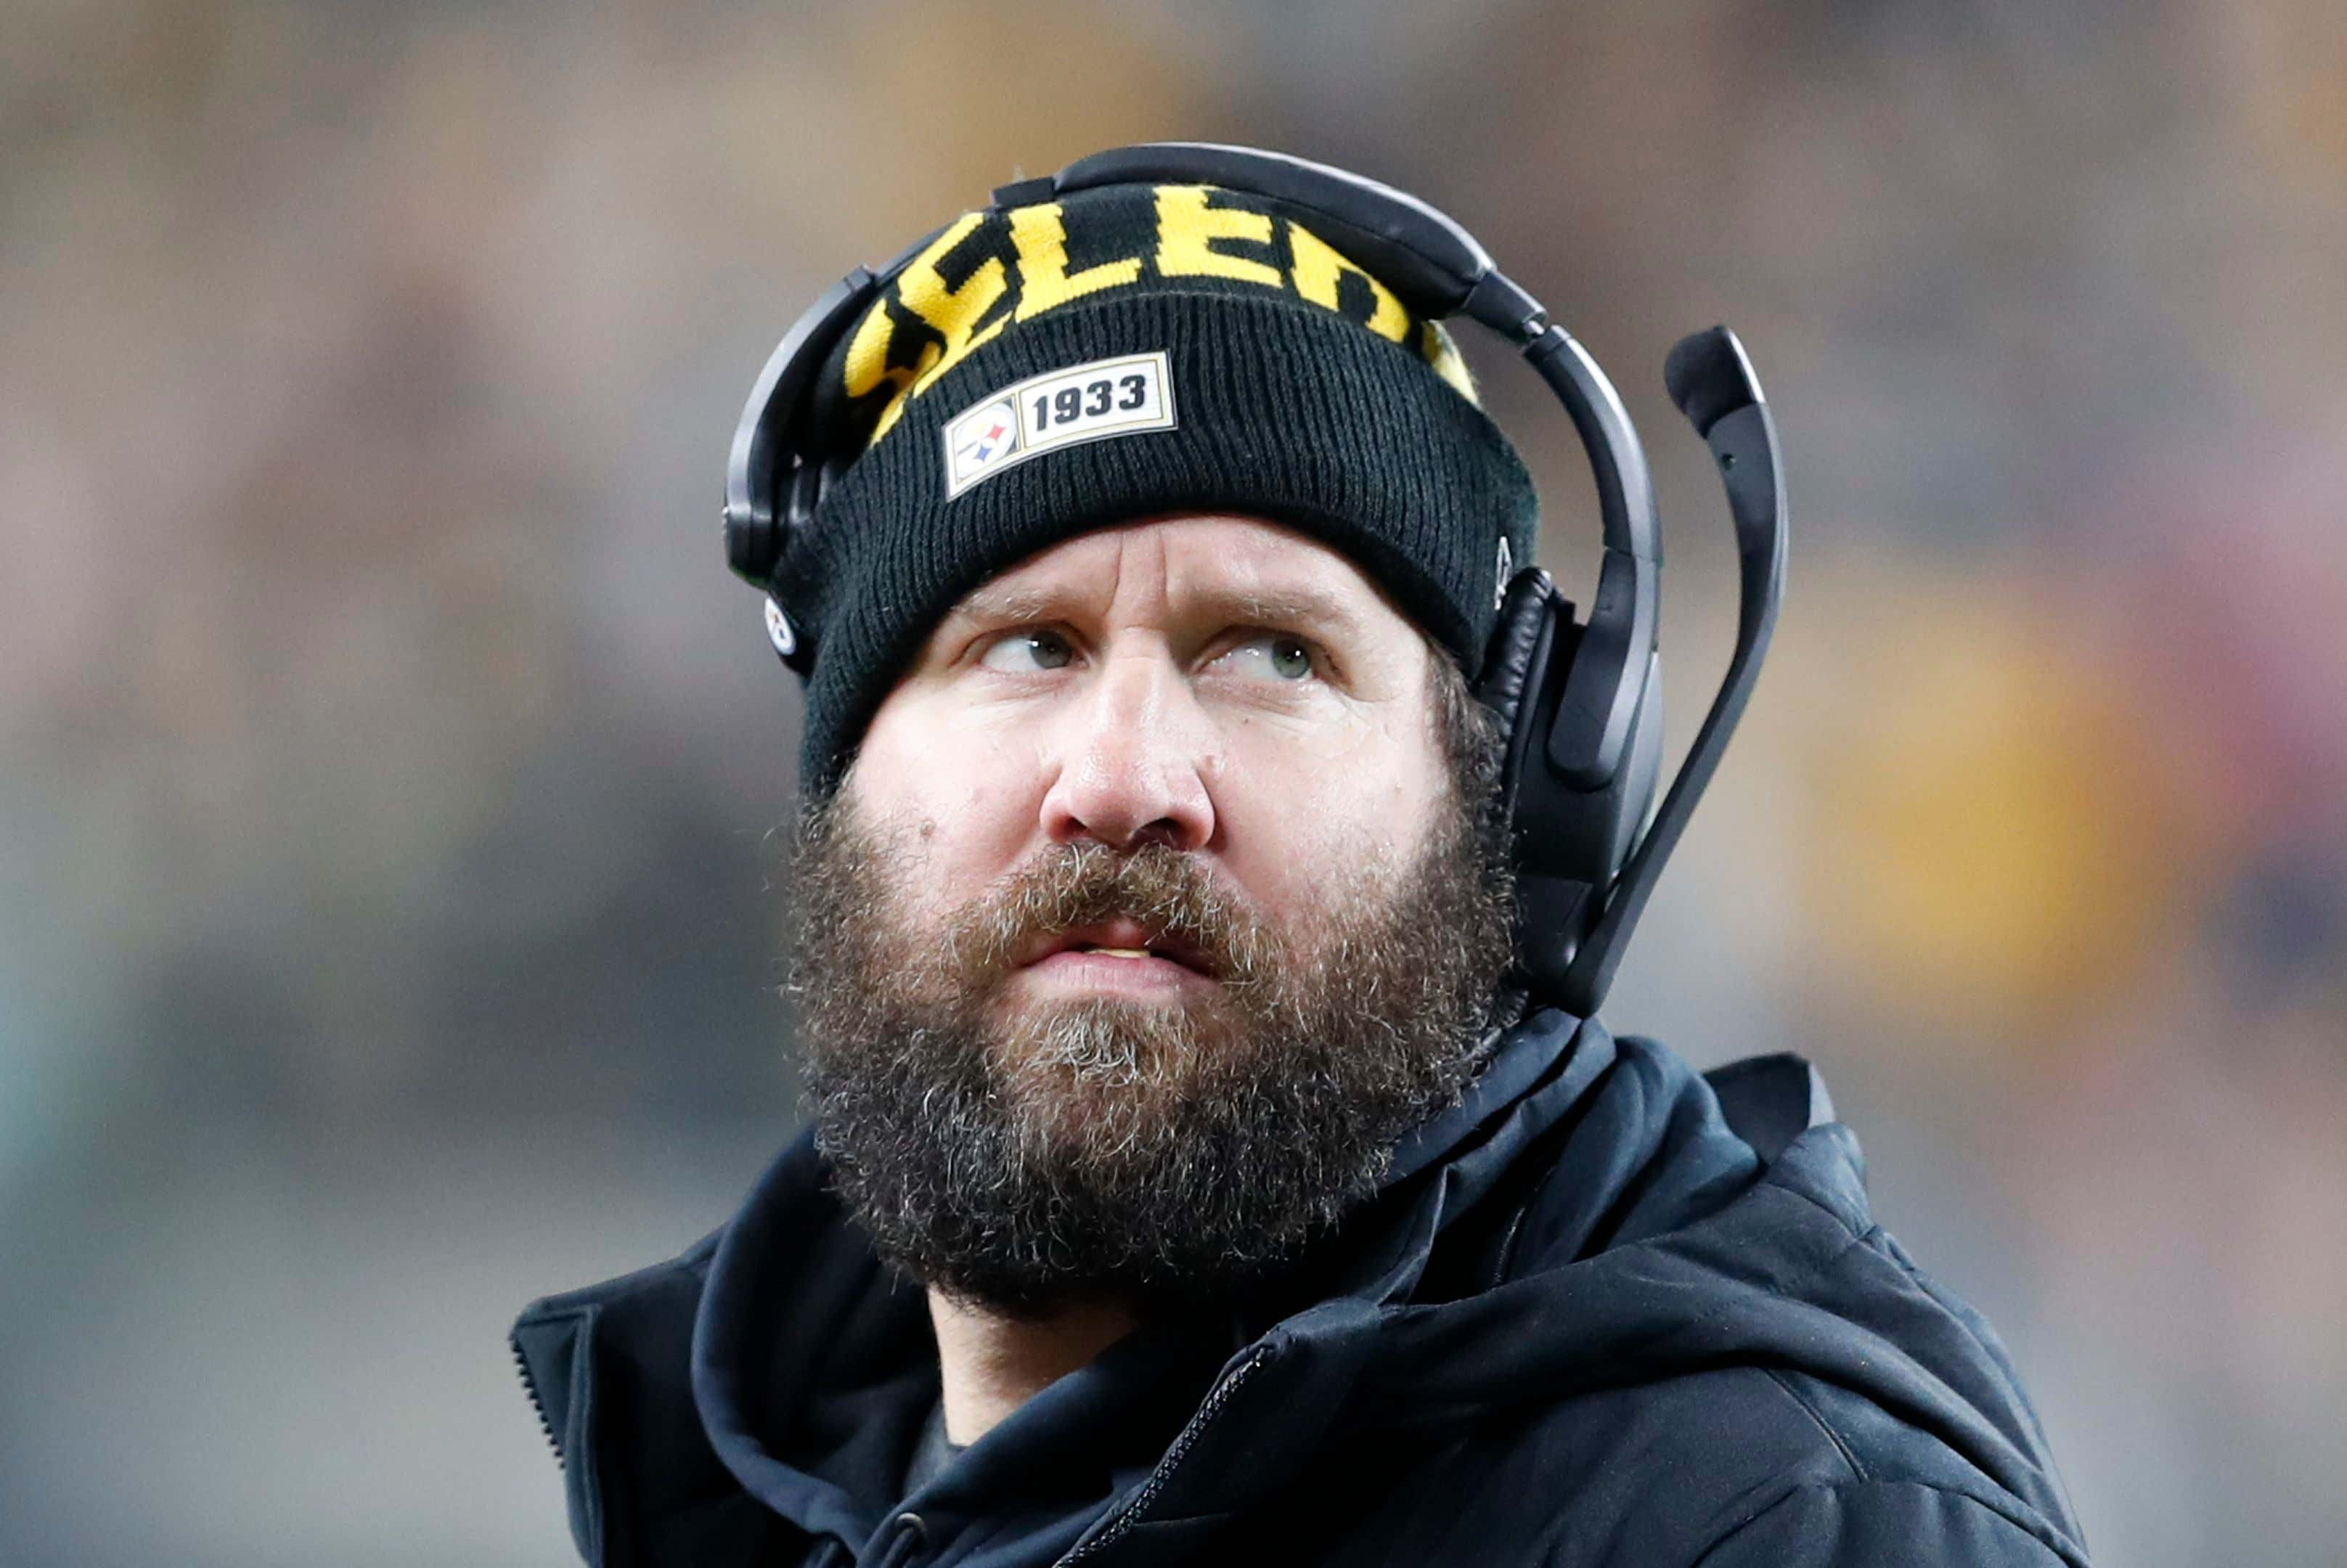 Pittsburgh Steelers quarterback Ben Roethlisberger stands on the sidelines during the first half of an NFL football game against the Buffalo Bills in Pittsburgh,. The Bills won 17-10